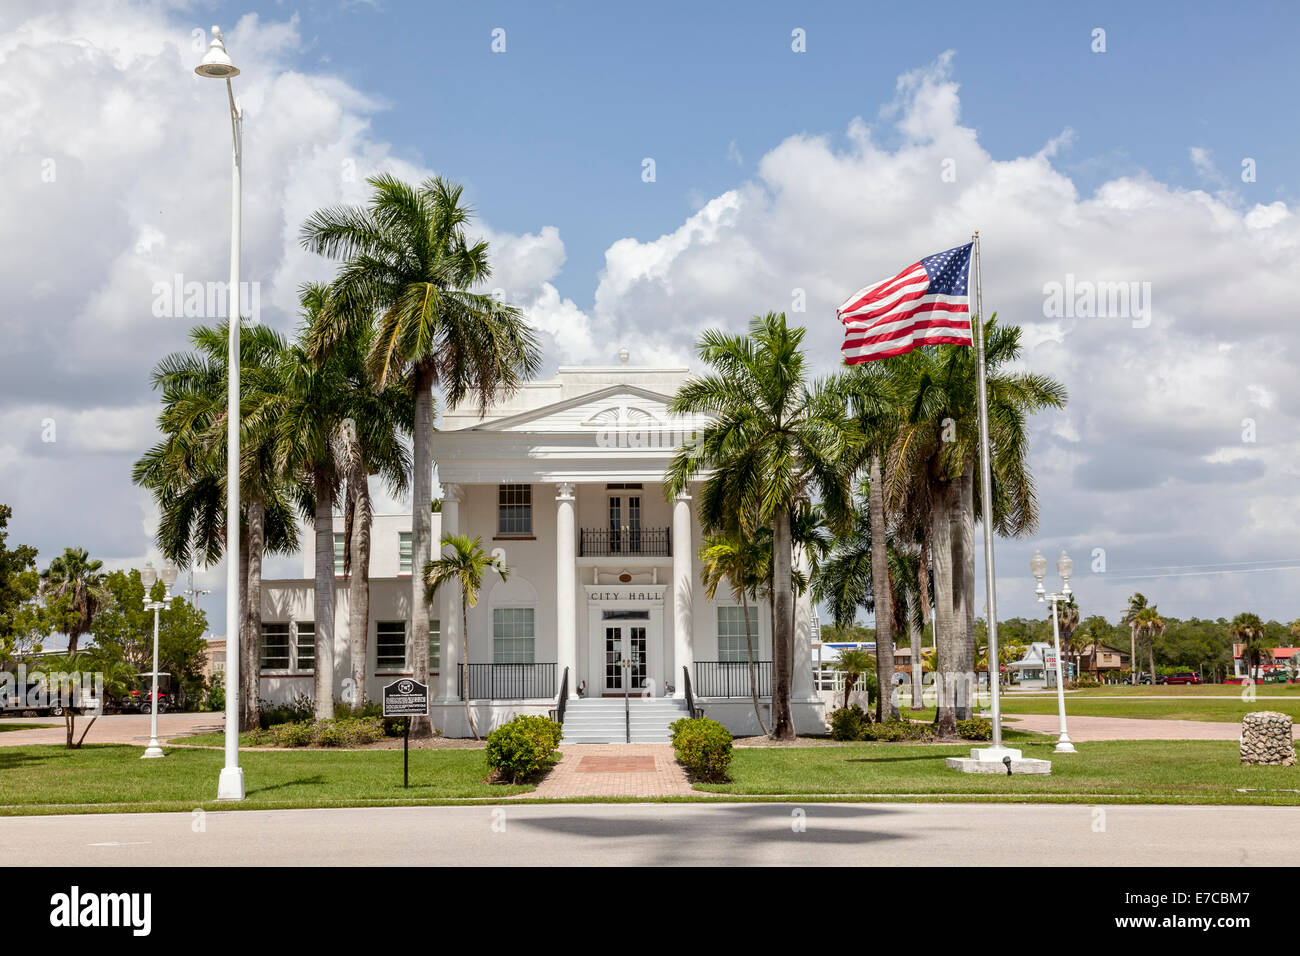 Freshly painted white and surrounded by palm trees, the classically designed City Hall in Everglades City, Florida, - Stock Image